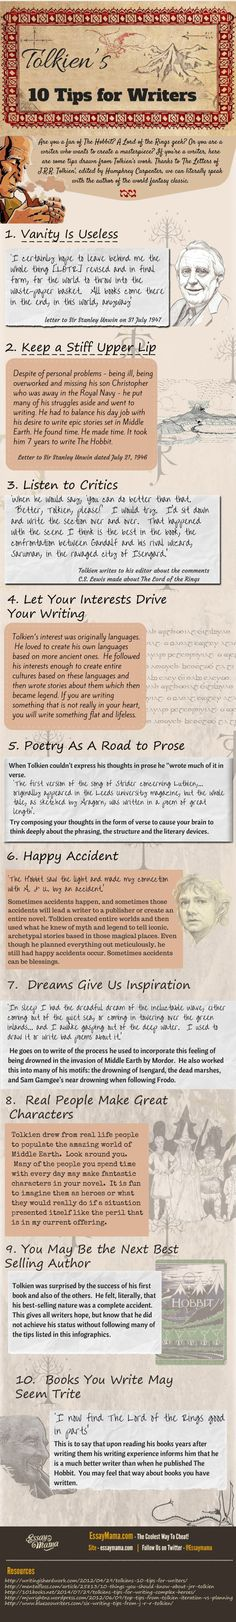 Tolkien's advice on writer's humility...Infographic by essaymama.com